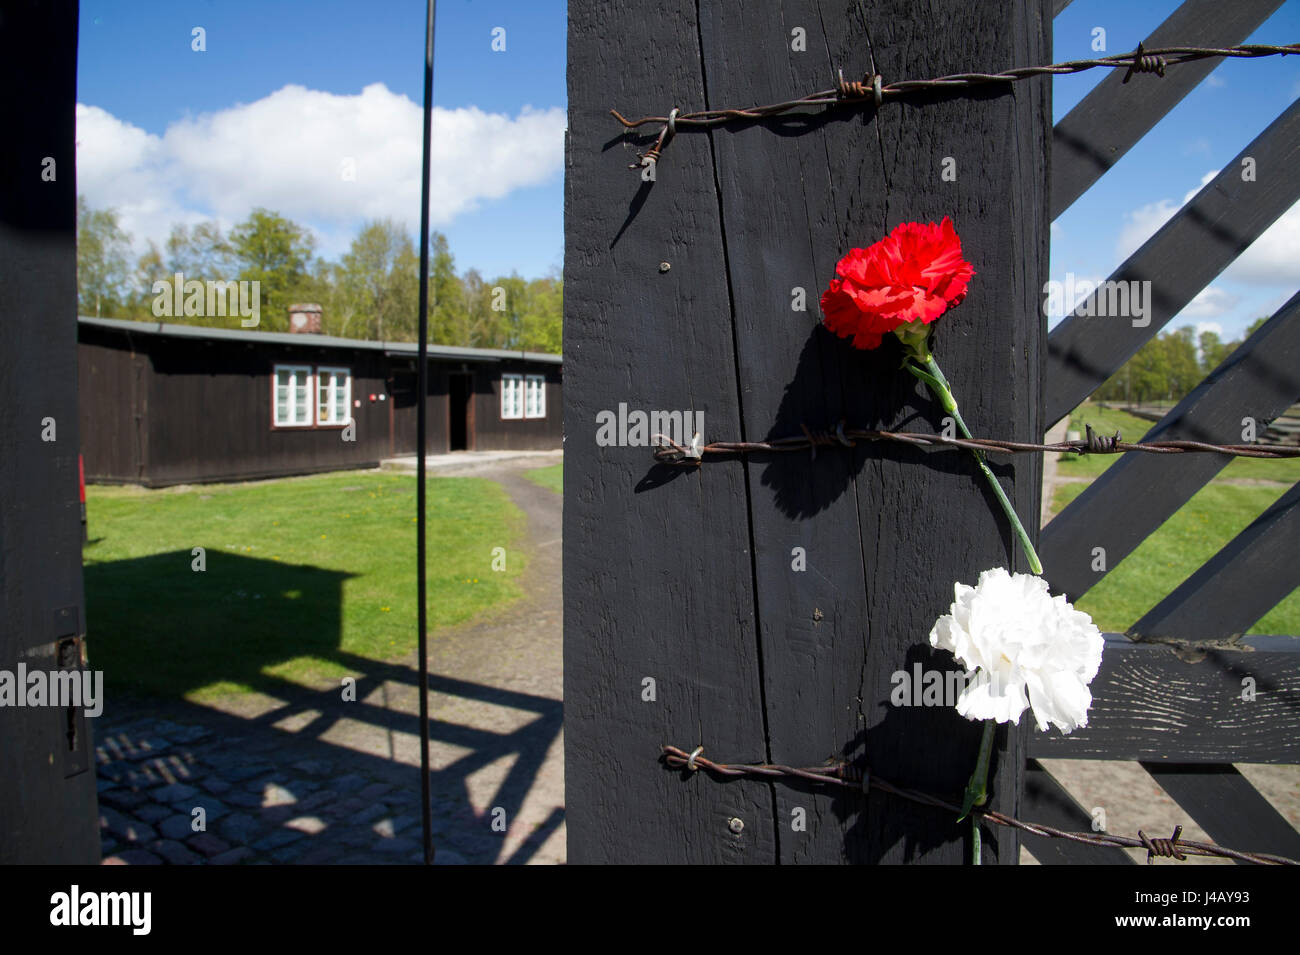 Flowers on the death gate in nazi german concentration camp kl stock flowers on the death gate in nazi german concentration camp kl stutthof in 72 anniversary of liberation of the concentration camp by the red army in m mightylinksfo